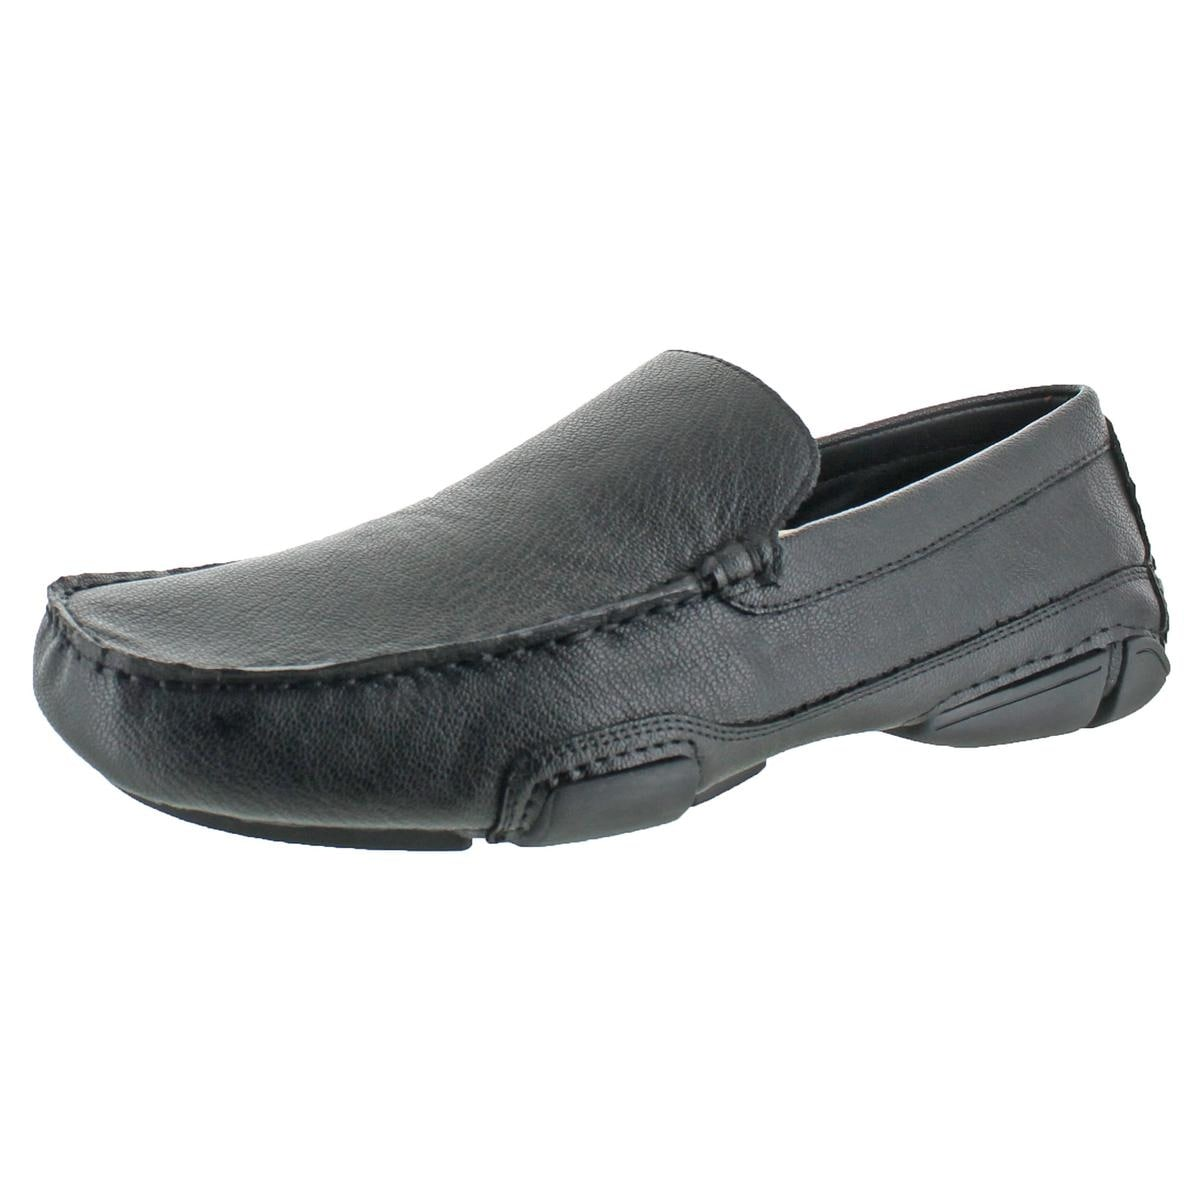 3b4441fe0a8 Shop Kenneth Cole Reaction Mens World Champion Loafers Moc Toe Casual -  Free Shipping On Orders Over  45 - Overstock.com - 21595711